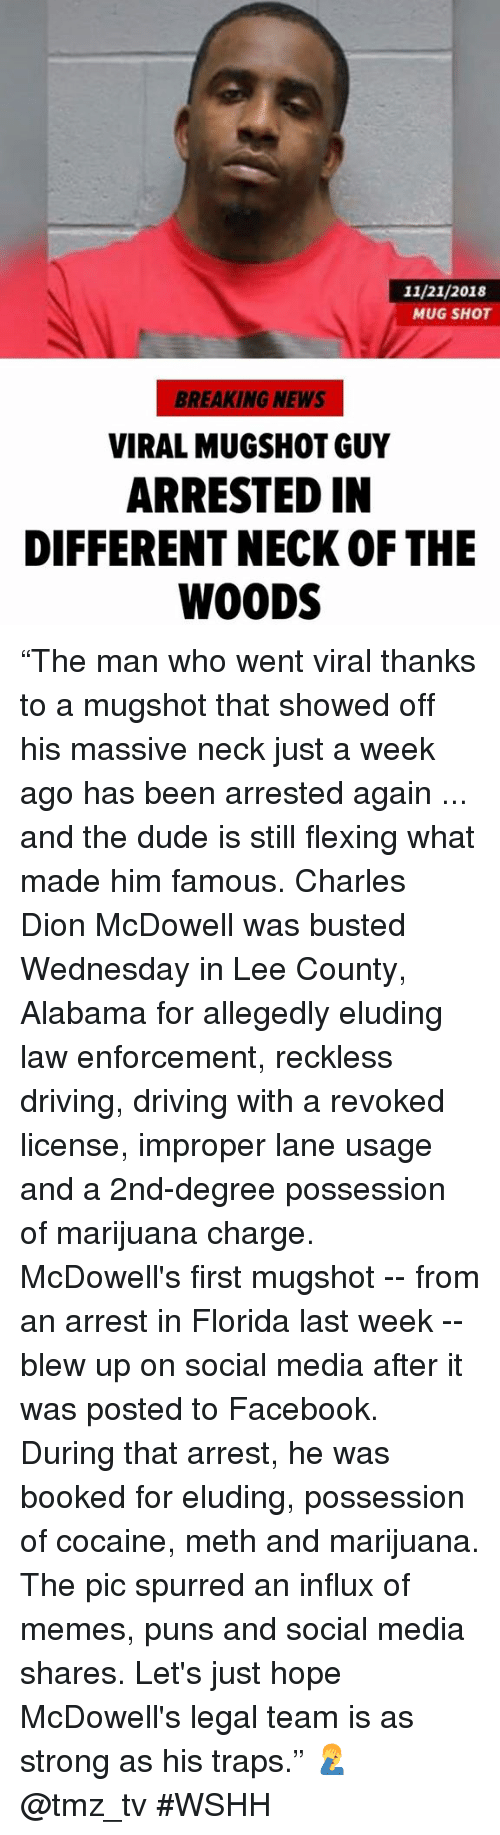 """Driving, Dude, and Facebook: 11/21/2018  MUG SHOT  BREAKING NEWS  VIRAL MUGSHOT GUY  ARRESTED IN  DIFFERENT NECK OF THE  WOODS """"The man who went viral thanks to a mugshot that showed off his massive neck just a week ago has been arrested again ... and the dude is still flexing what made him famous. Charles Dion McDowell was busted Wednesday in Lee County, Alabama for allegedly eluding law enforcement, reckless driving, driving with a revoked license, improper lane usage and a 2nd-degree possession of marijuana charge. McDowell's first mugshot -- from an arrest in Florida last week -- blew up on social media after it was posted to Facebook. During that arrest, he was booked for eluding, possession of cocaine, meth and marijuana. The pic spurred an influx of memes, puns and social media shares. Let's just hope McDowell's legal team is as strong as his traps."""" 🤦♂️ @tmz_tv #WSHH"""